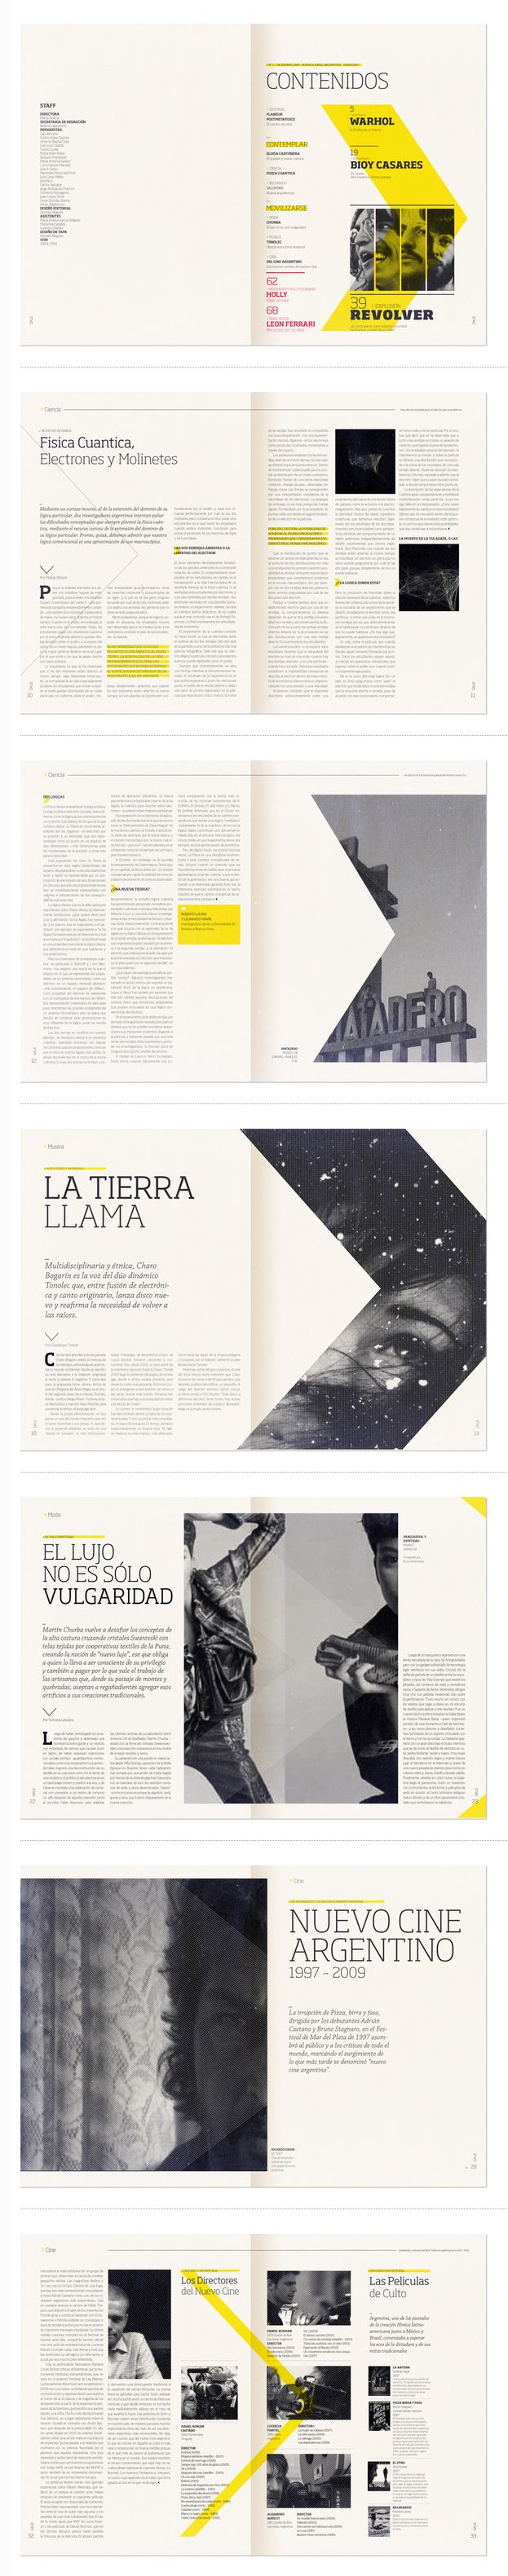 Connu 64 best Magazines layouts Editorial杂志布局版式 images on  WR17